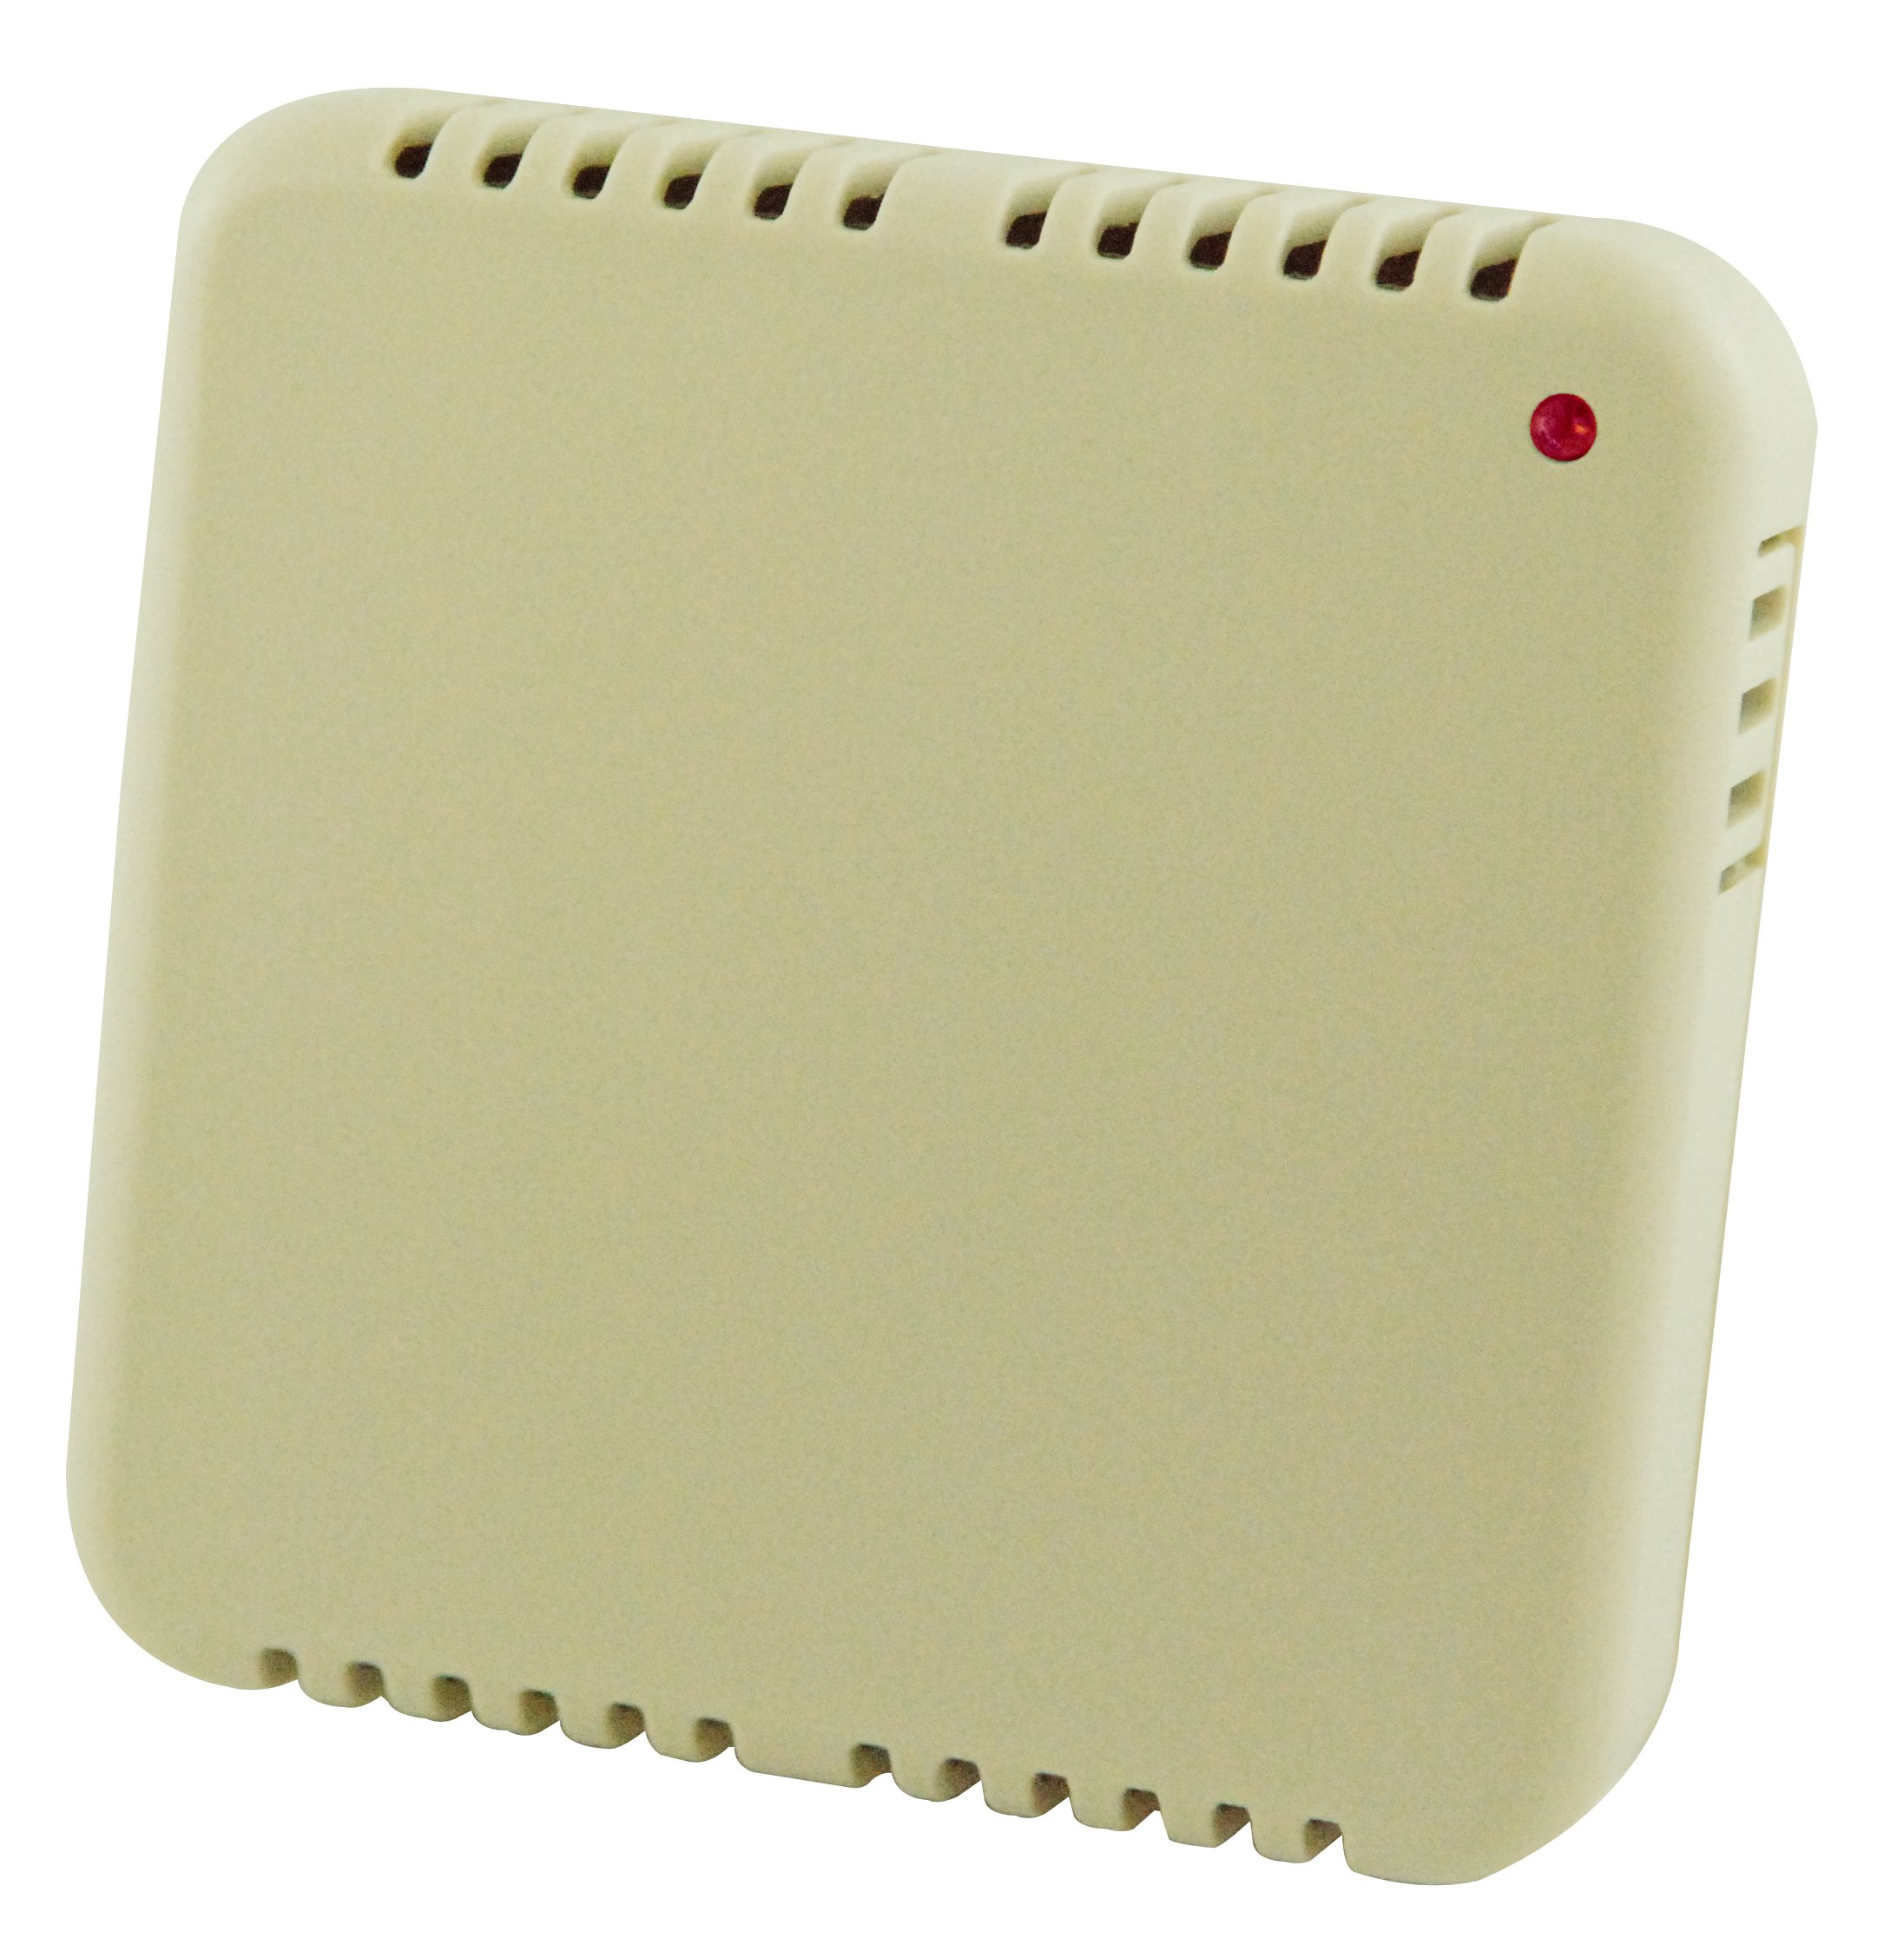 Embedded Data Systems OW-ENV-TH - Temperature / Humidity Sensor